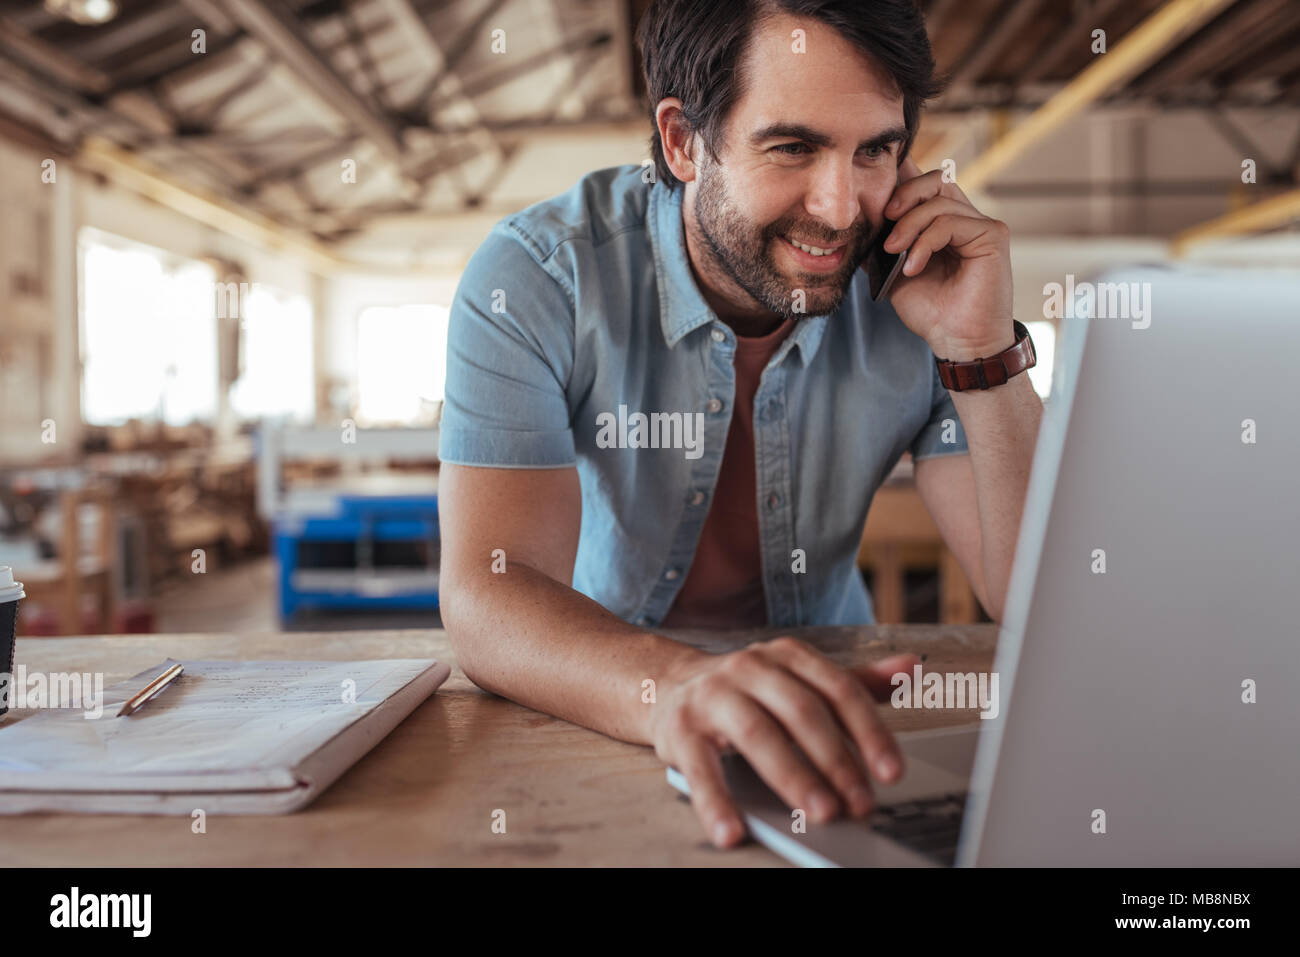 Woodworker discussing designs over the phone and using a laptop - Stock Image